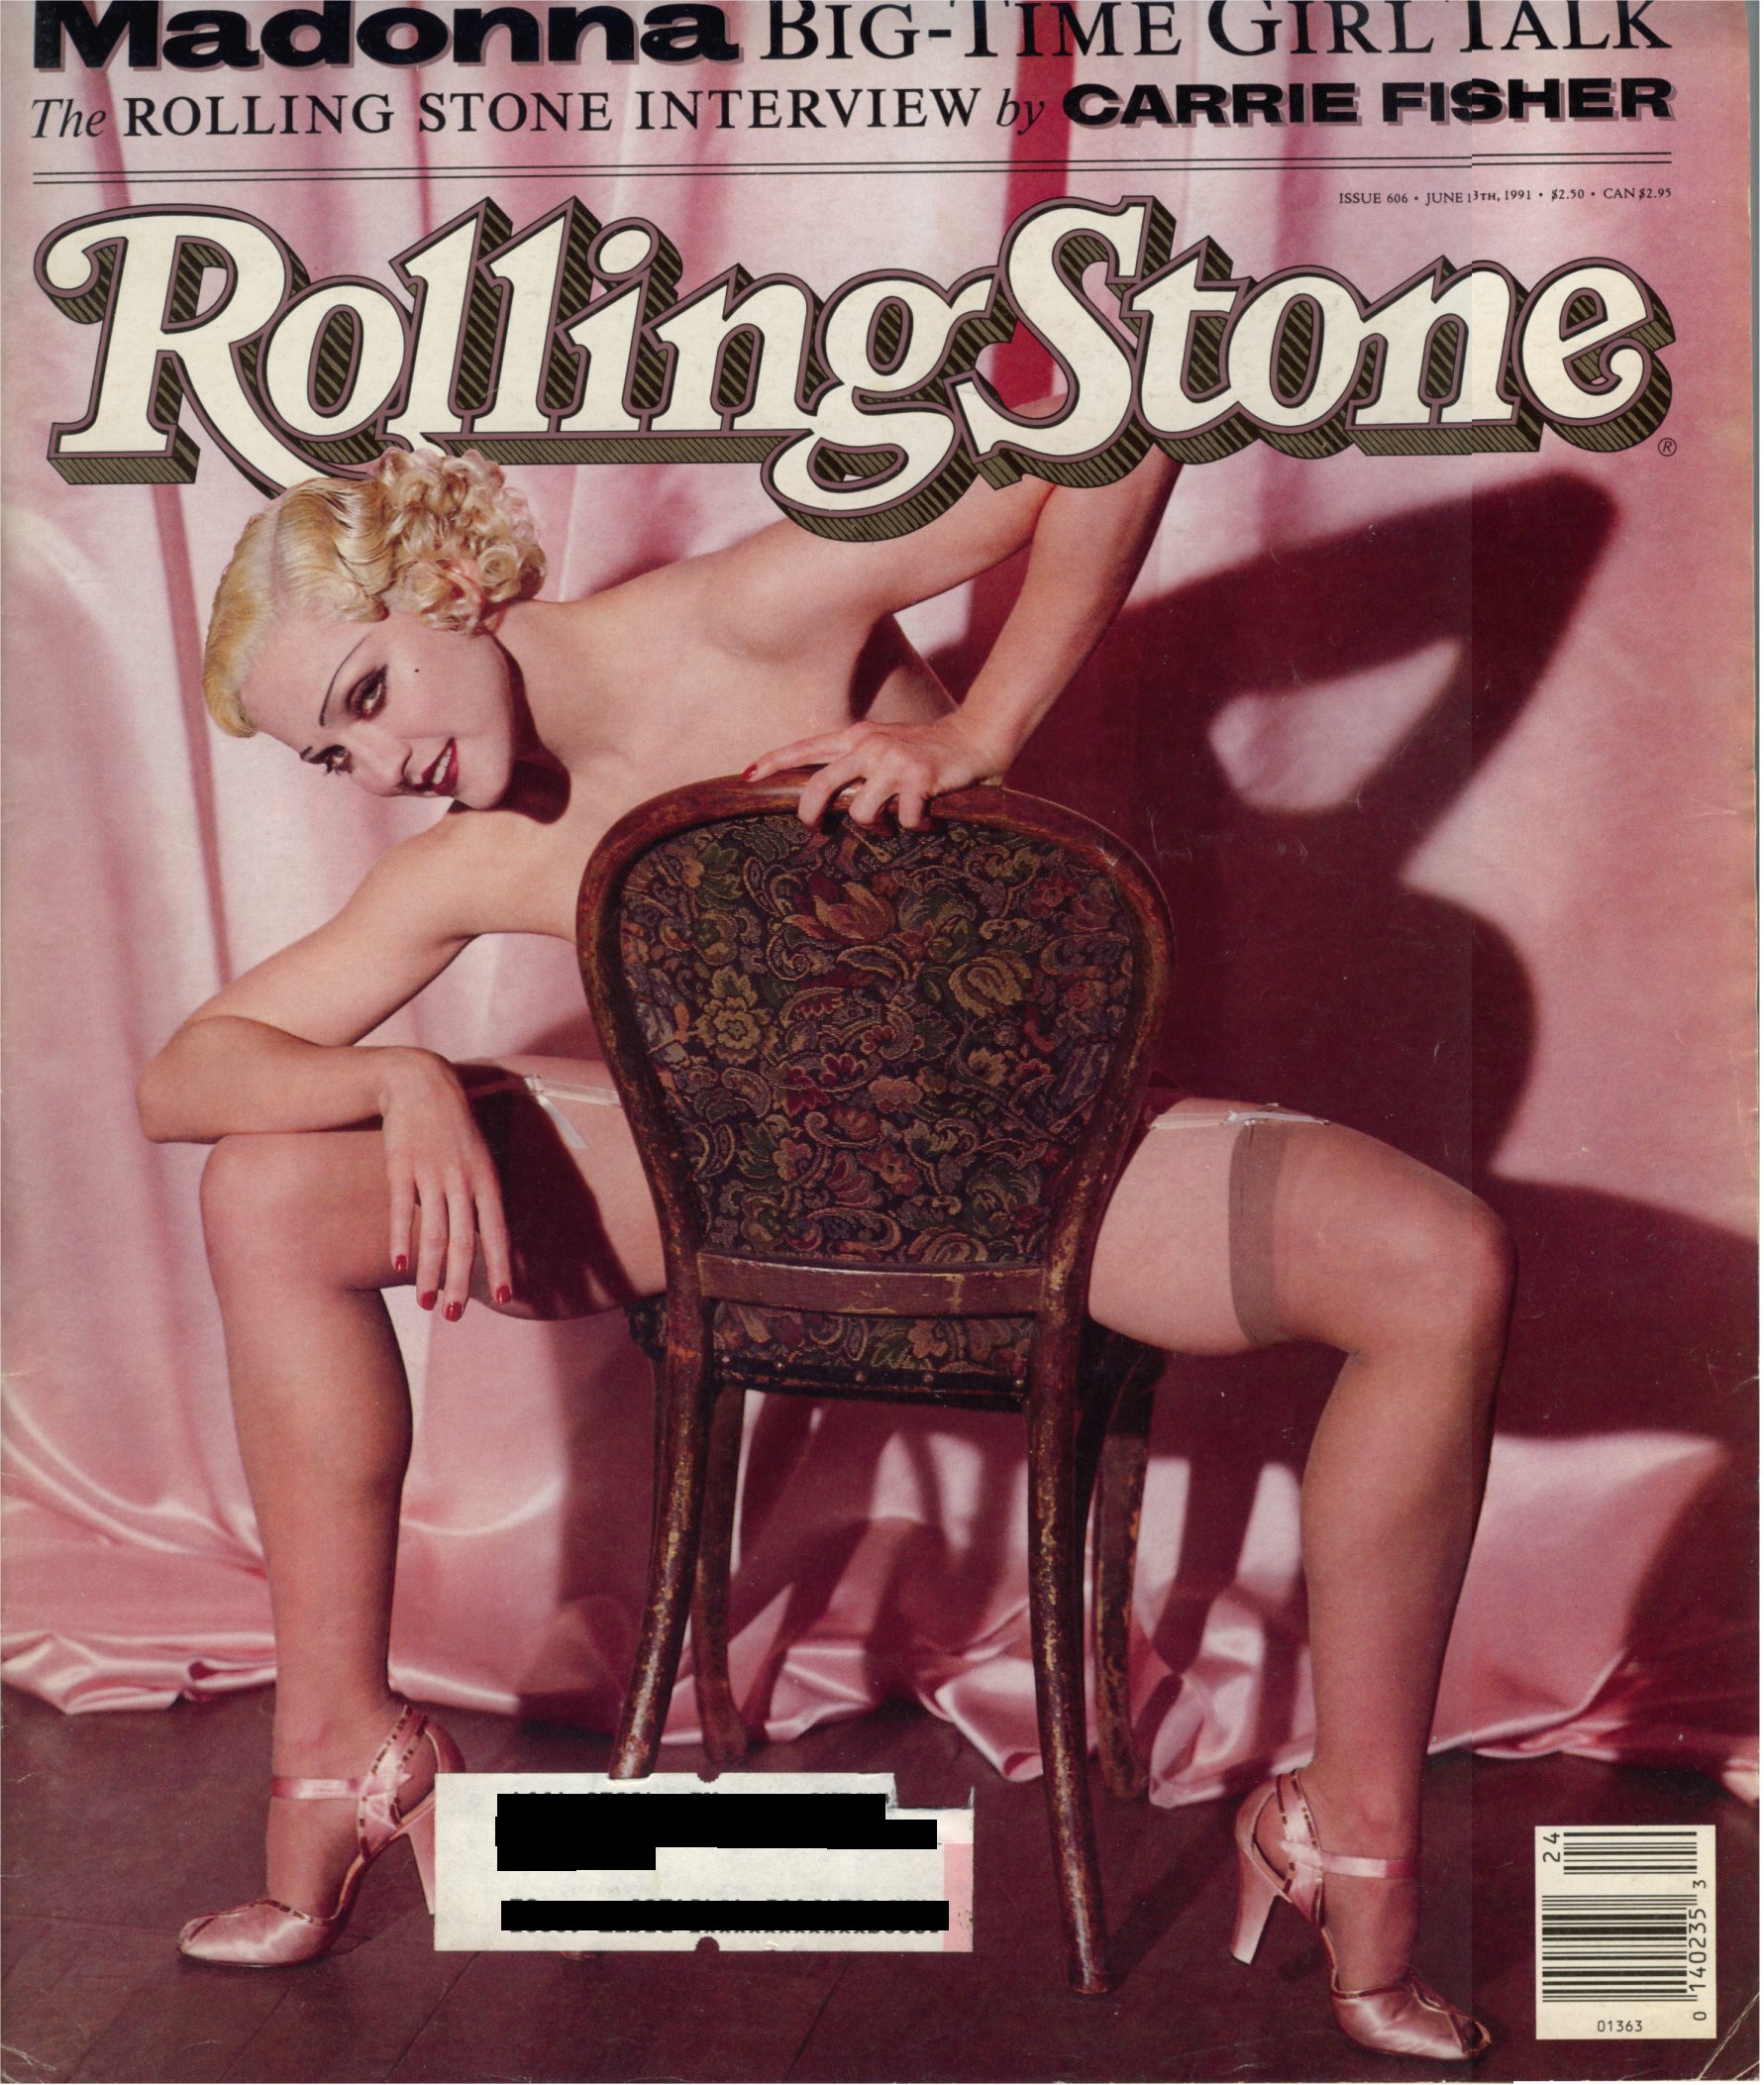 madonna-rolling-stone-1991-meisel-02